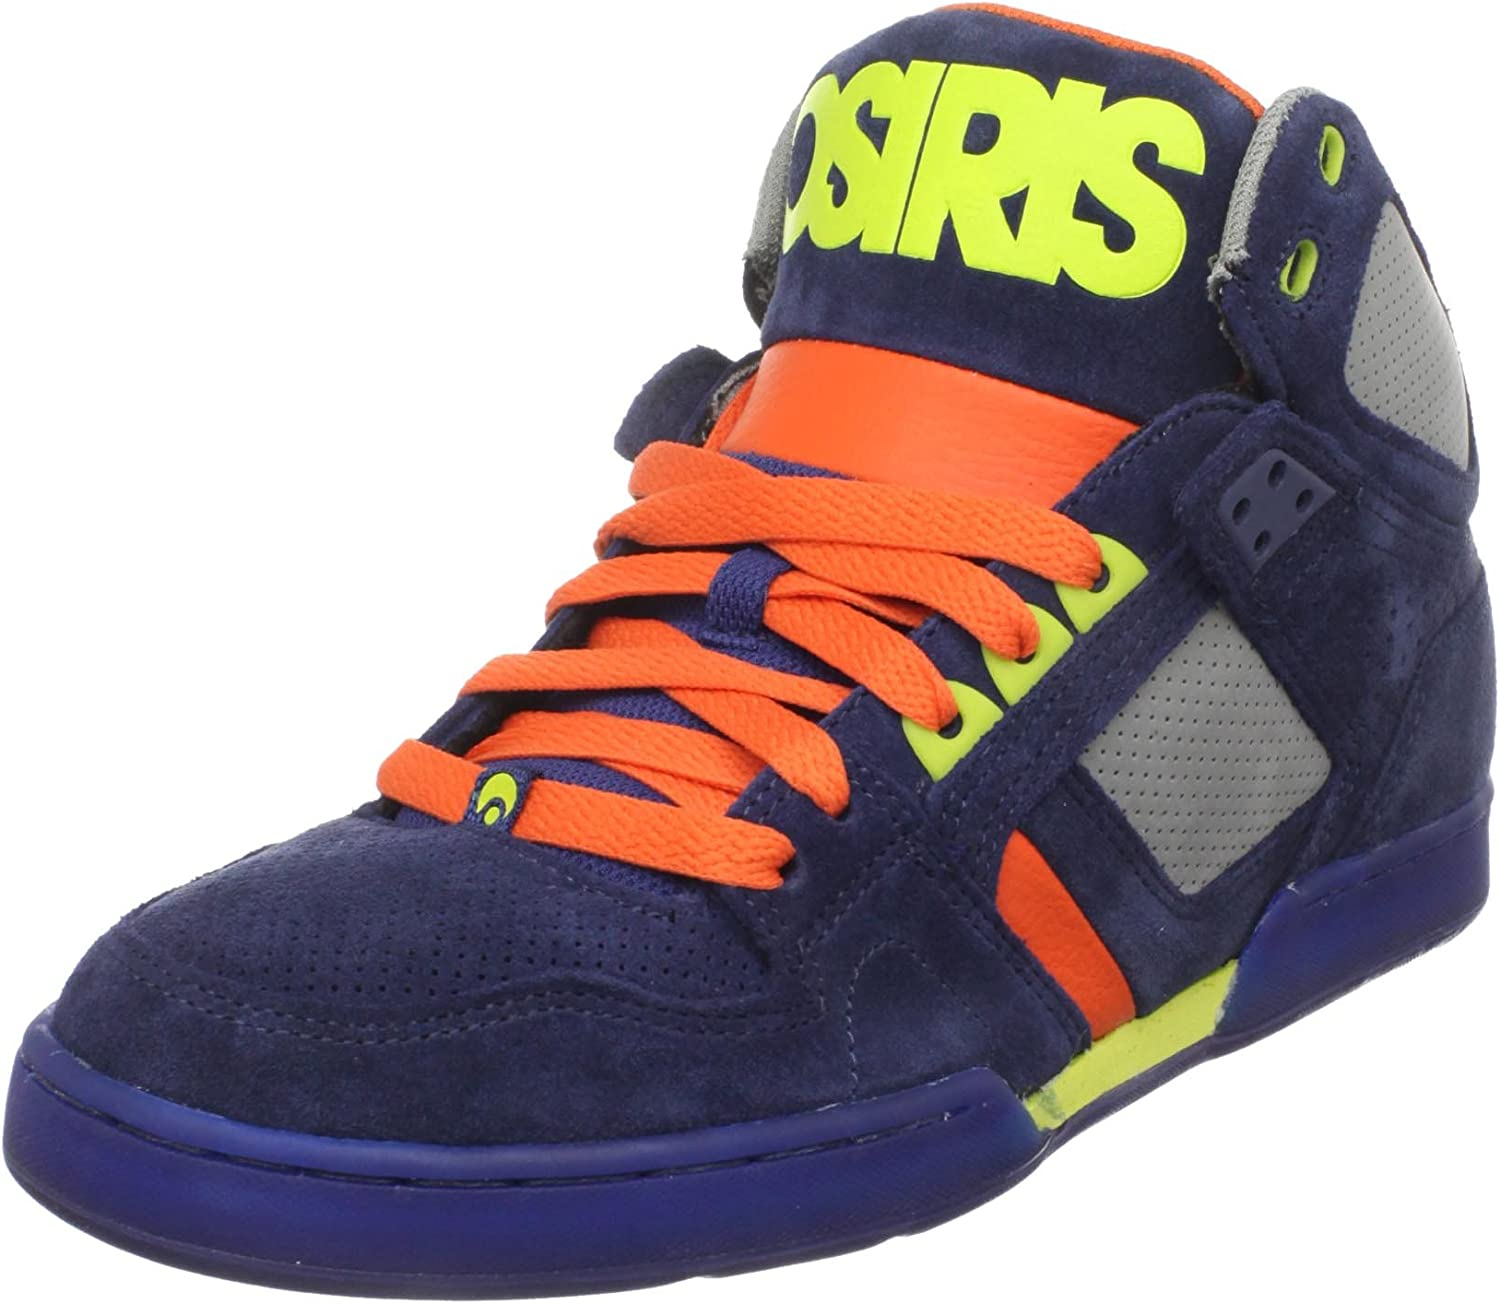 Osiris Men's NYC 83 Skate Direct sale of manufacturer Shoe Challenge the lowest price of Japan